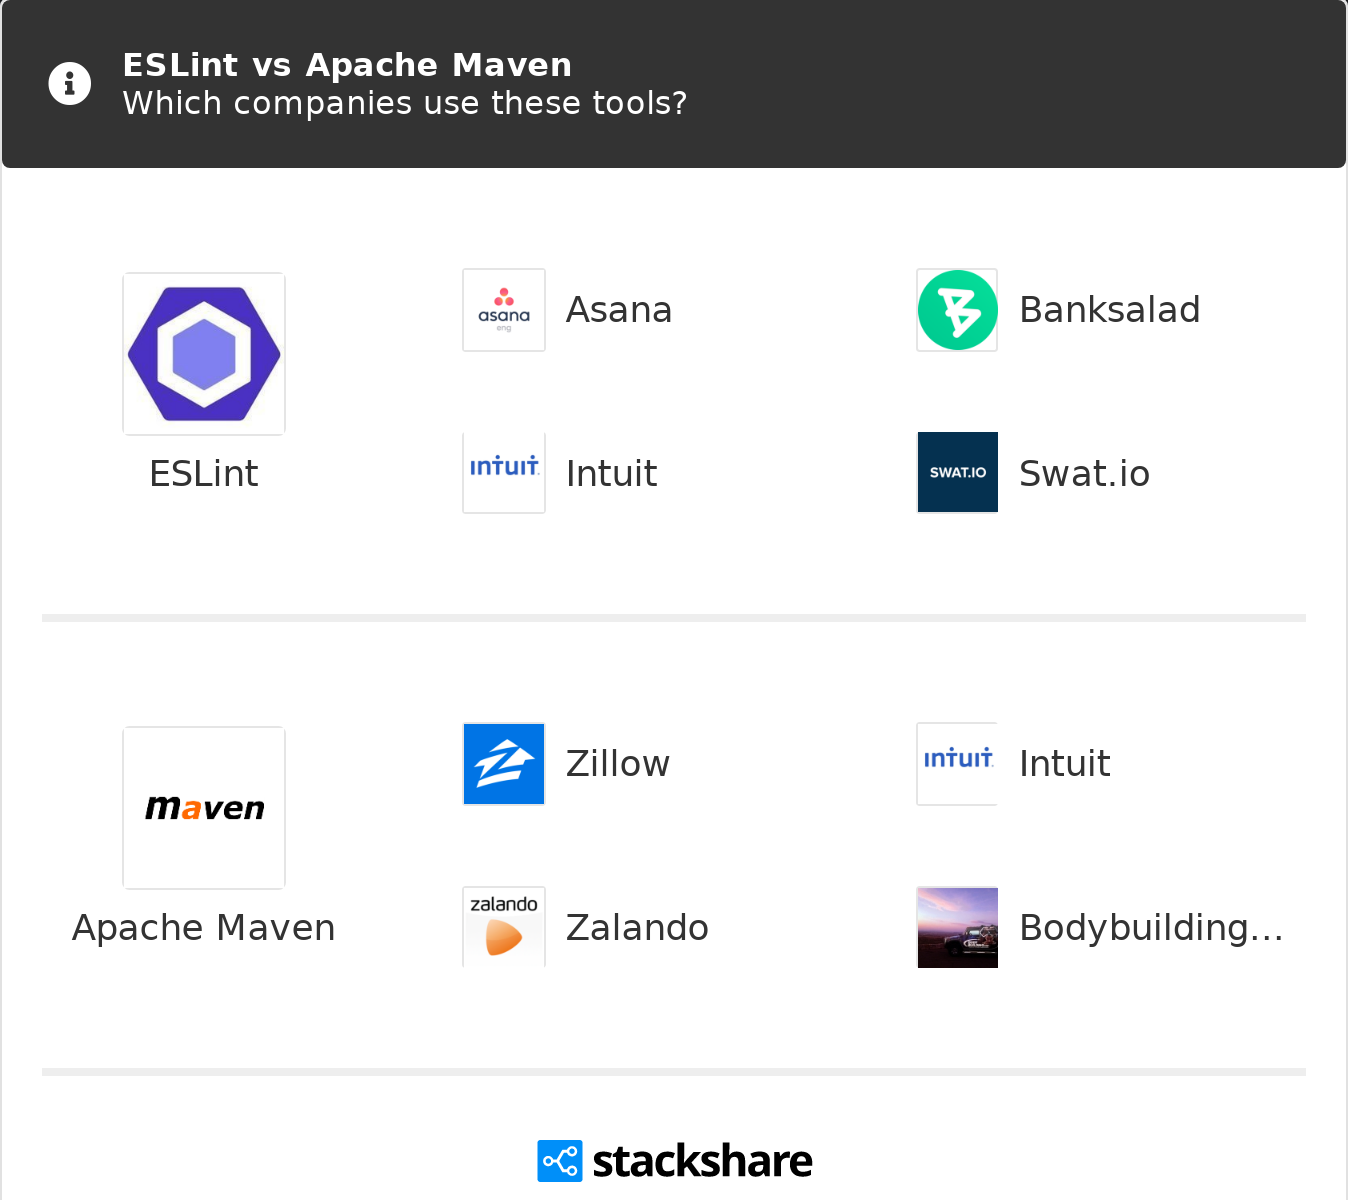 ESLint vs Apache Maven | What are the differences?